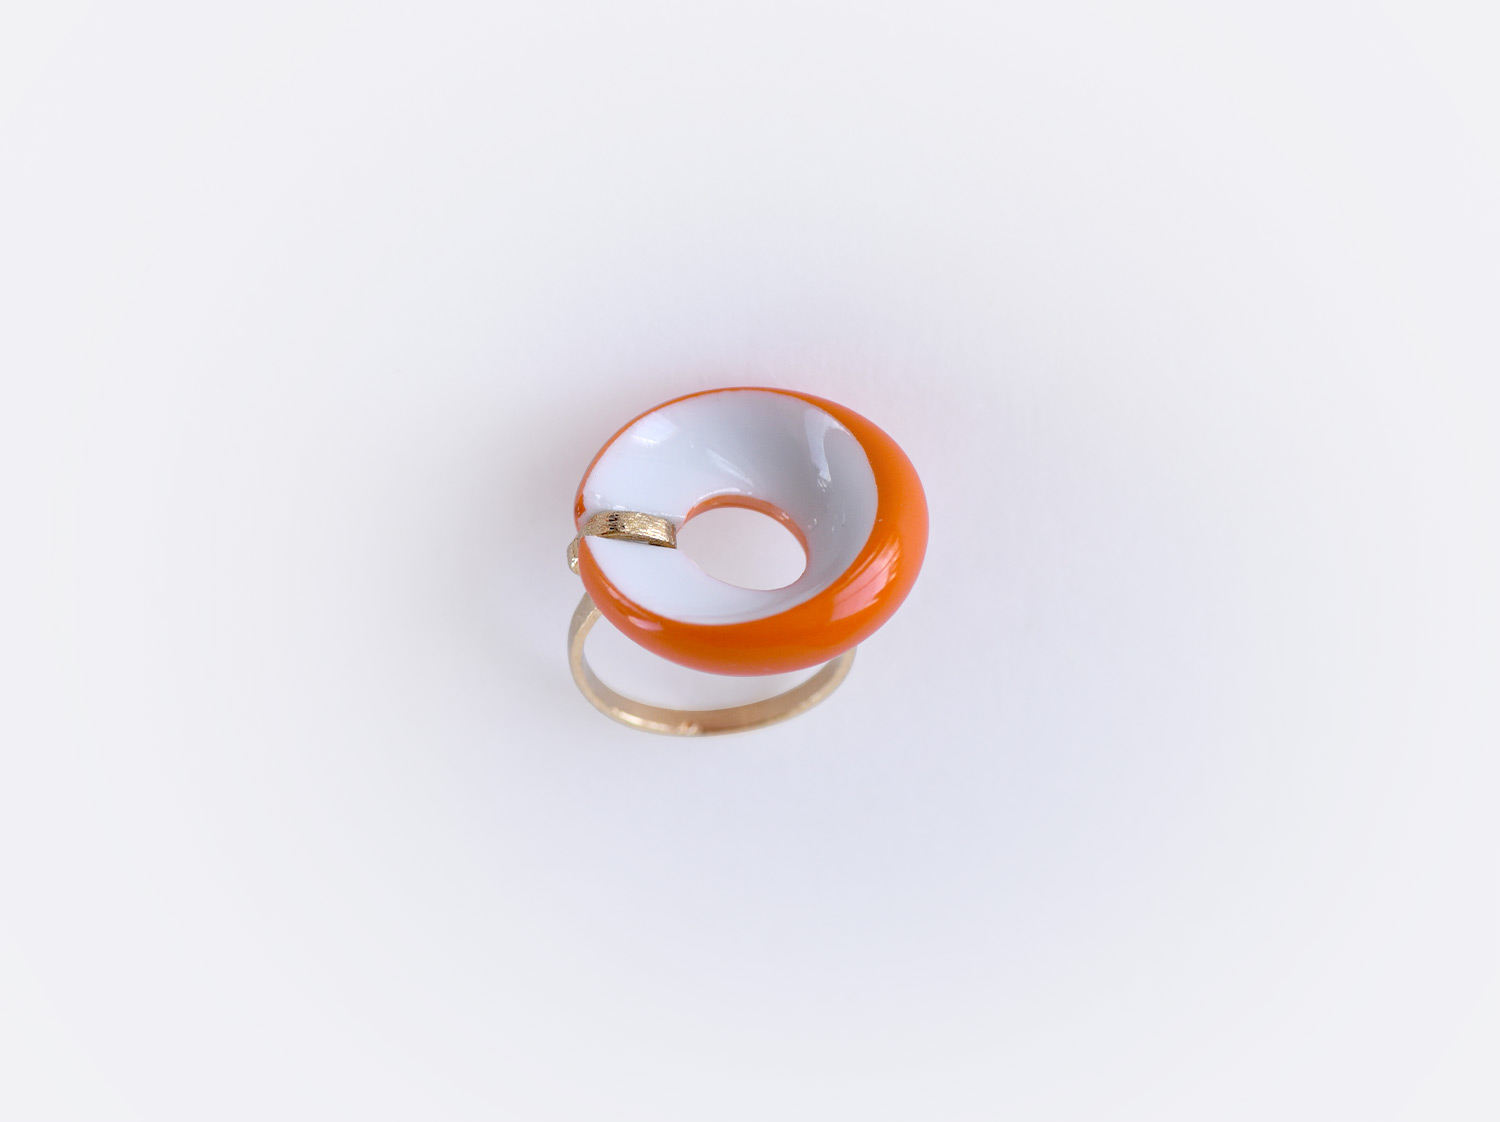 Bague plate Alba orange en porcelaine de la collection ALBA ORANGE Bernardaud